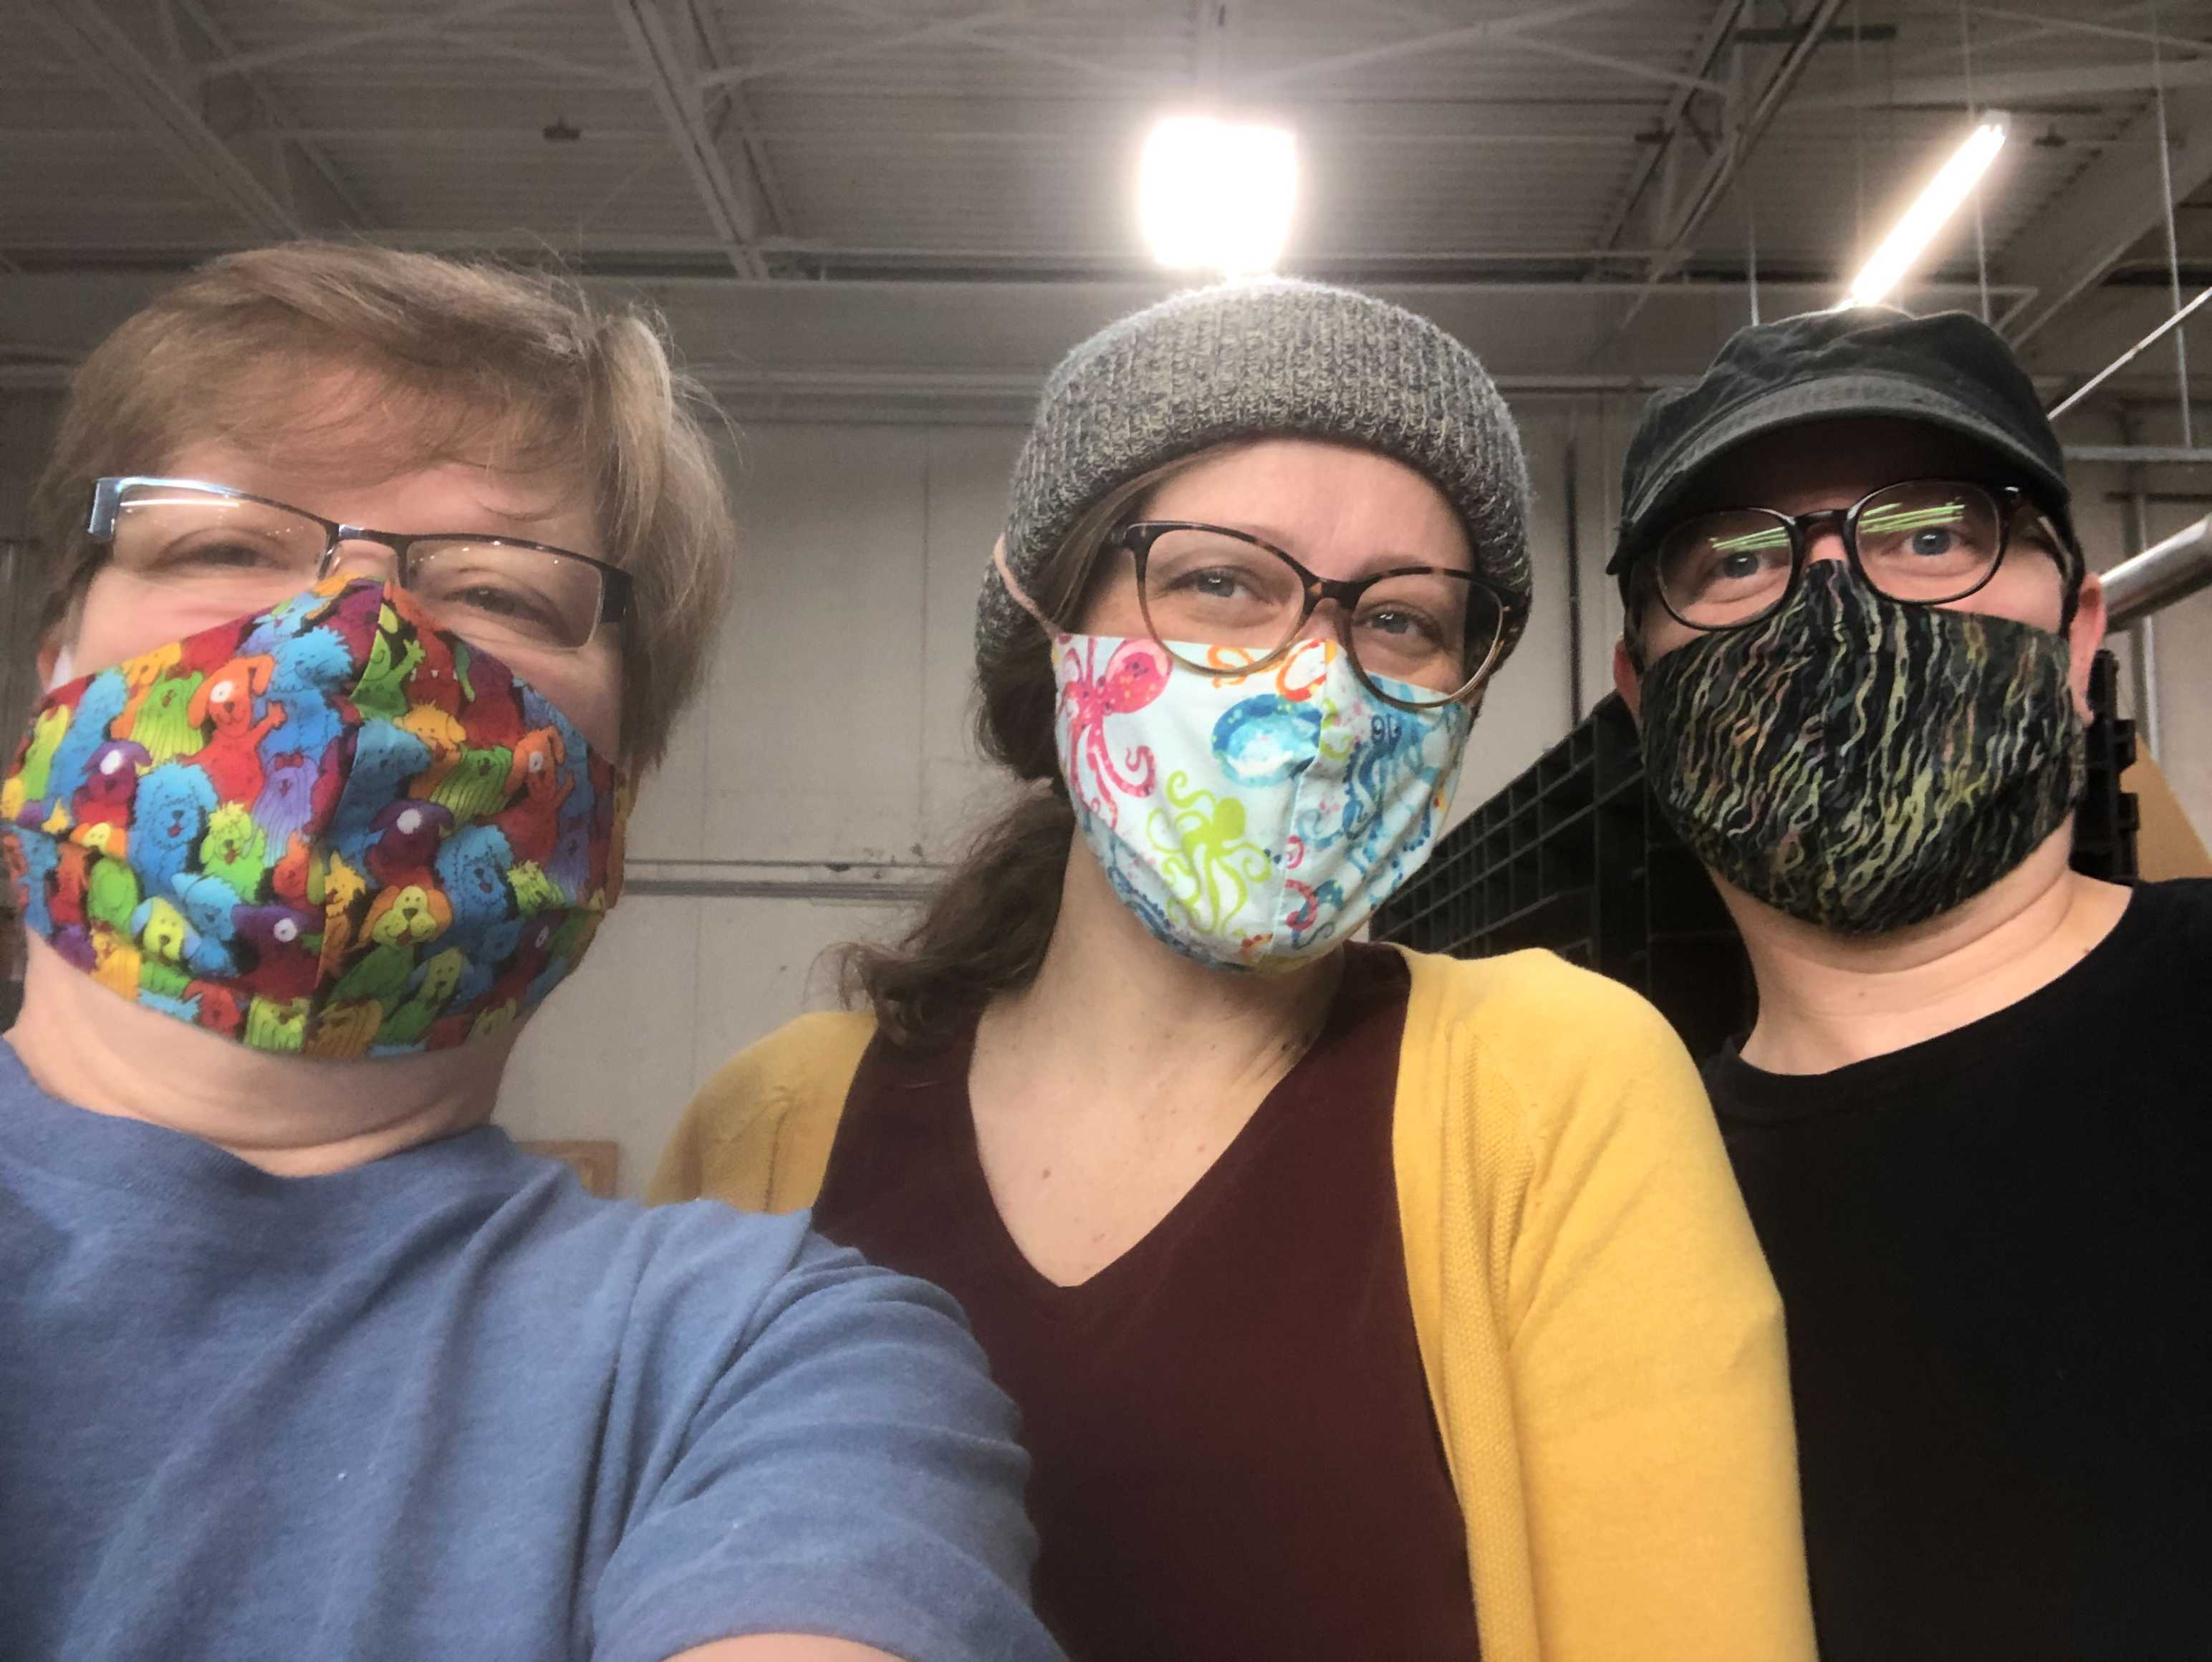 Talea with East Fork employees Lisa and Brock wearing masks